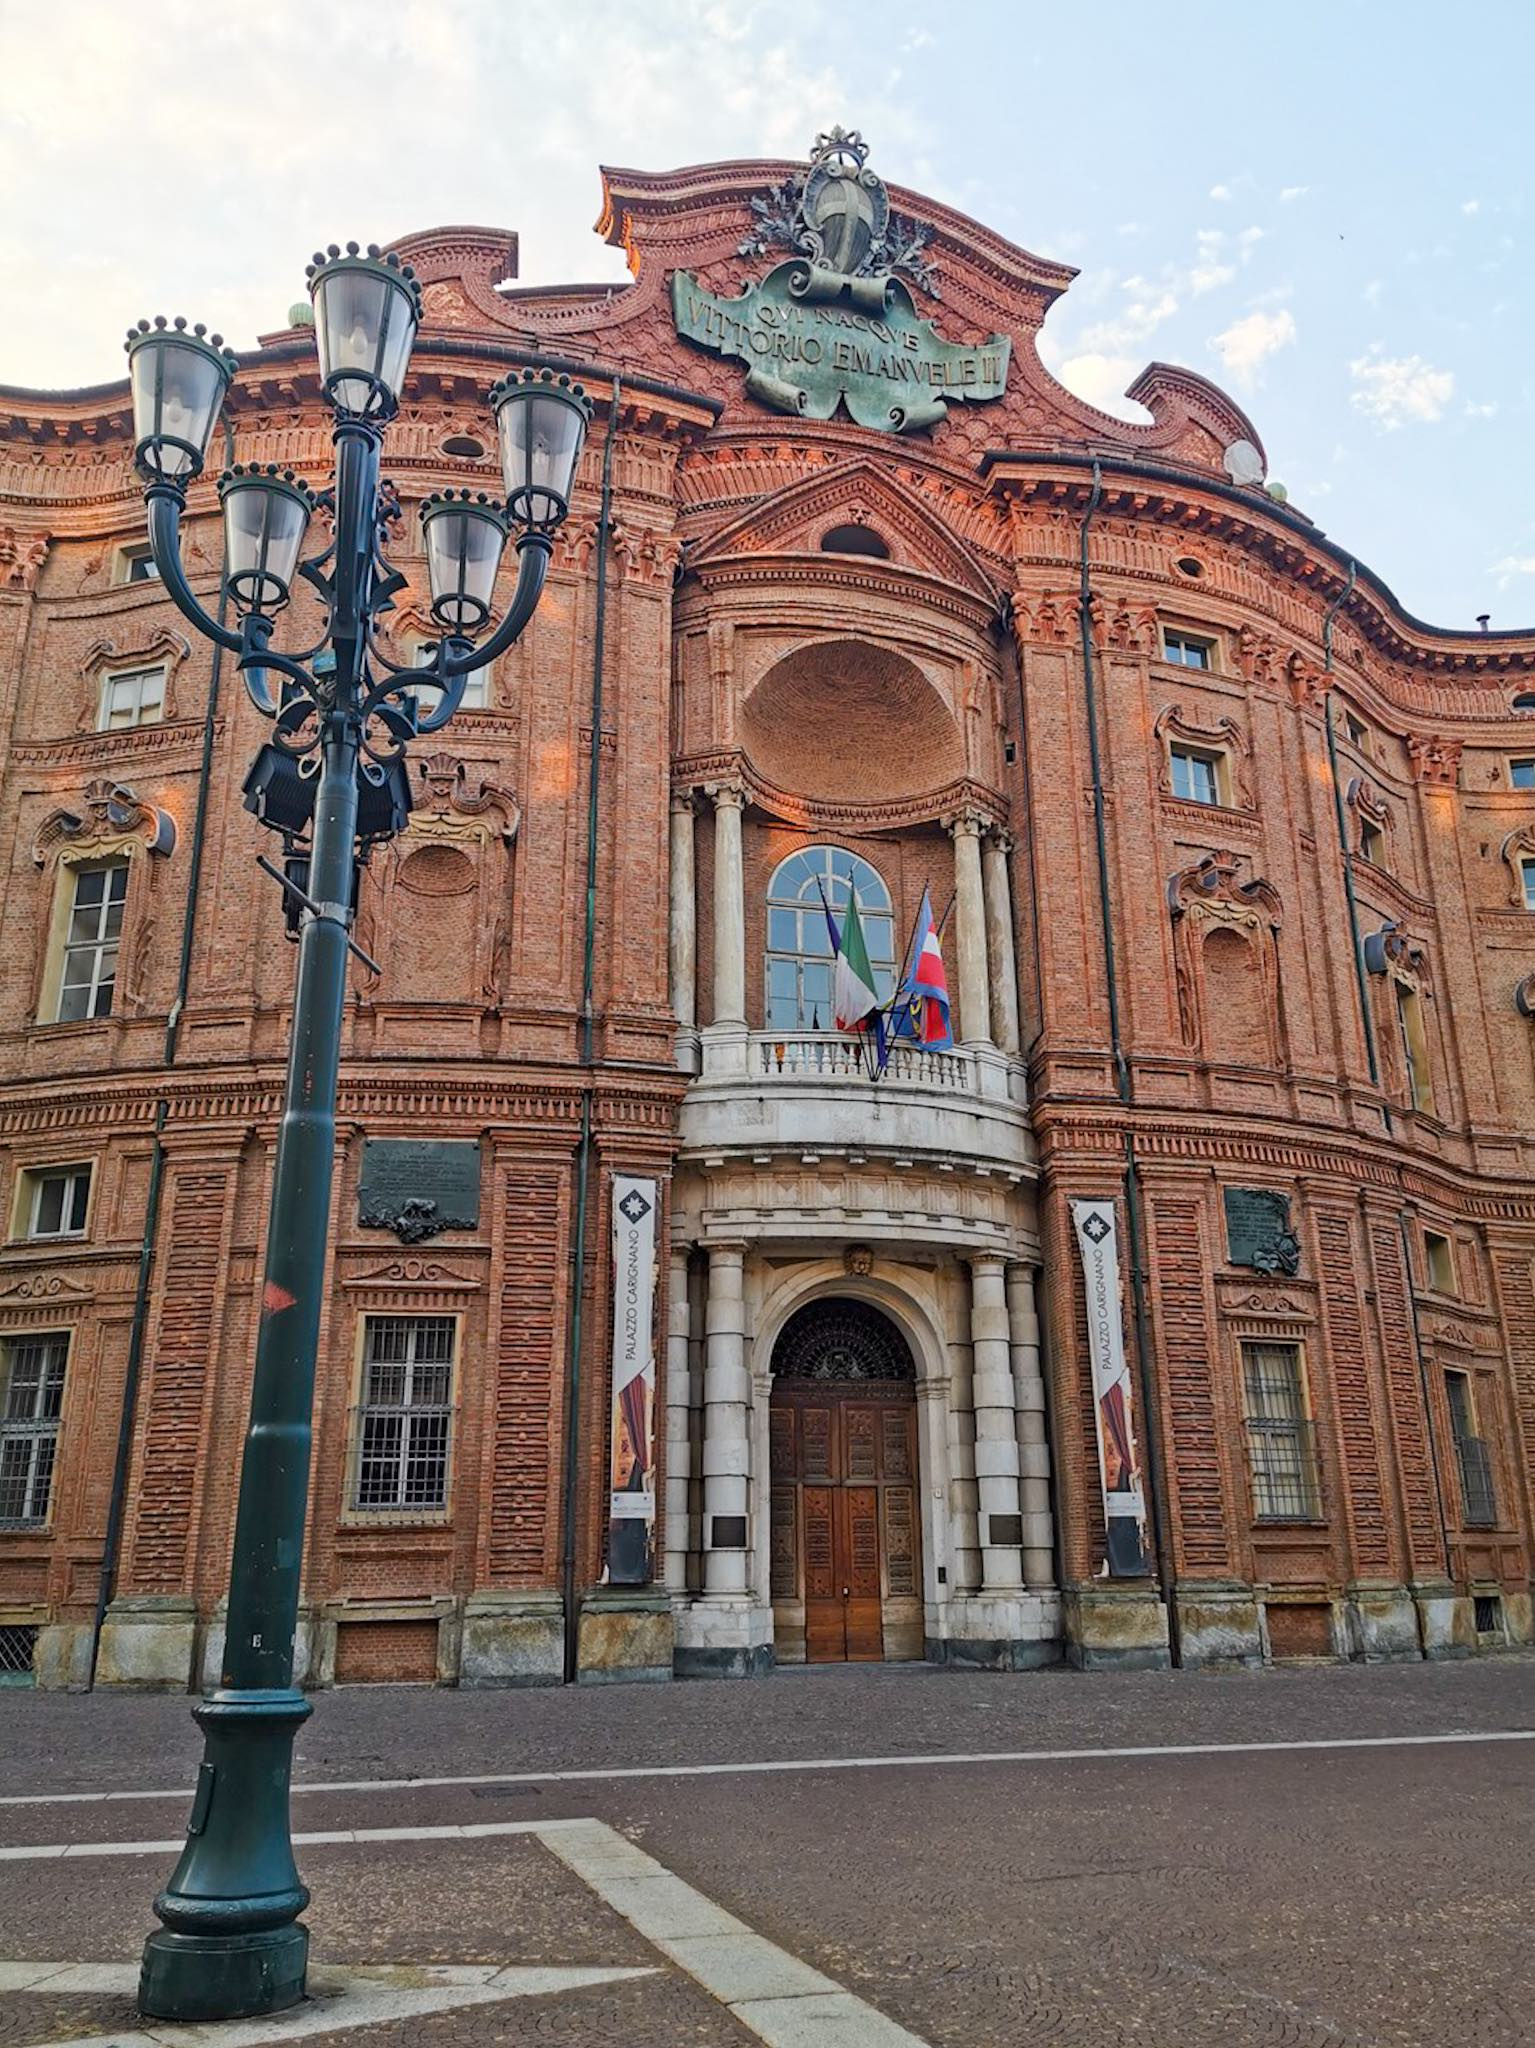 The facade of Carignano Palace in Piazza Carignano, one of Turin's most beautiful squares